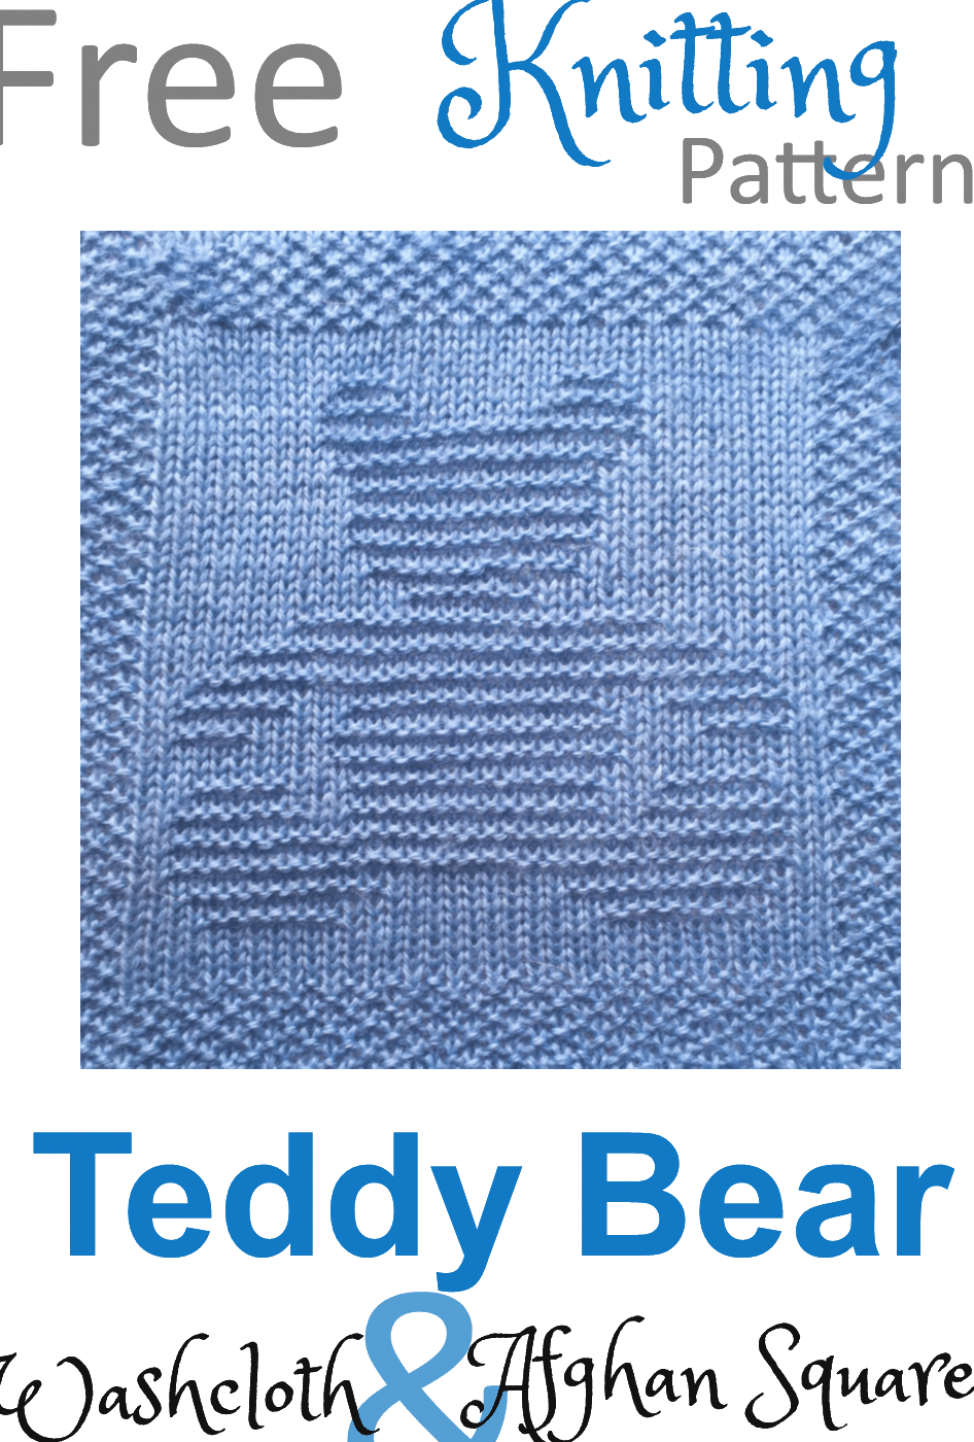 Free Teddy Bear Dishcloth or Afghan Square Knitting Pattern #knitting #patterns #free #knitting #for #beginners #knitting #projects #knitting #inspiration #knit #crochet